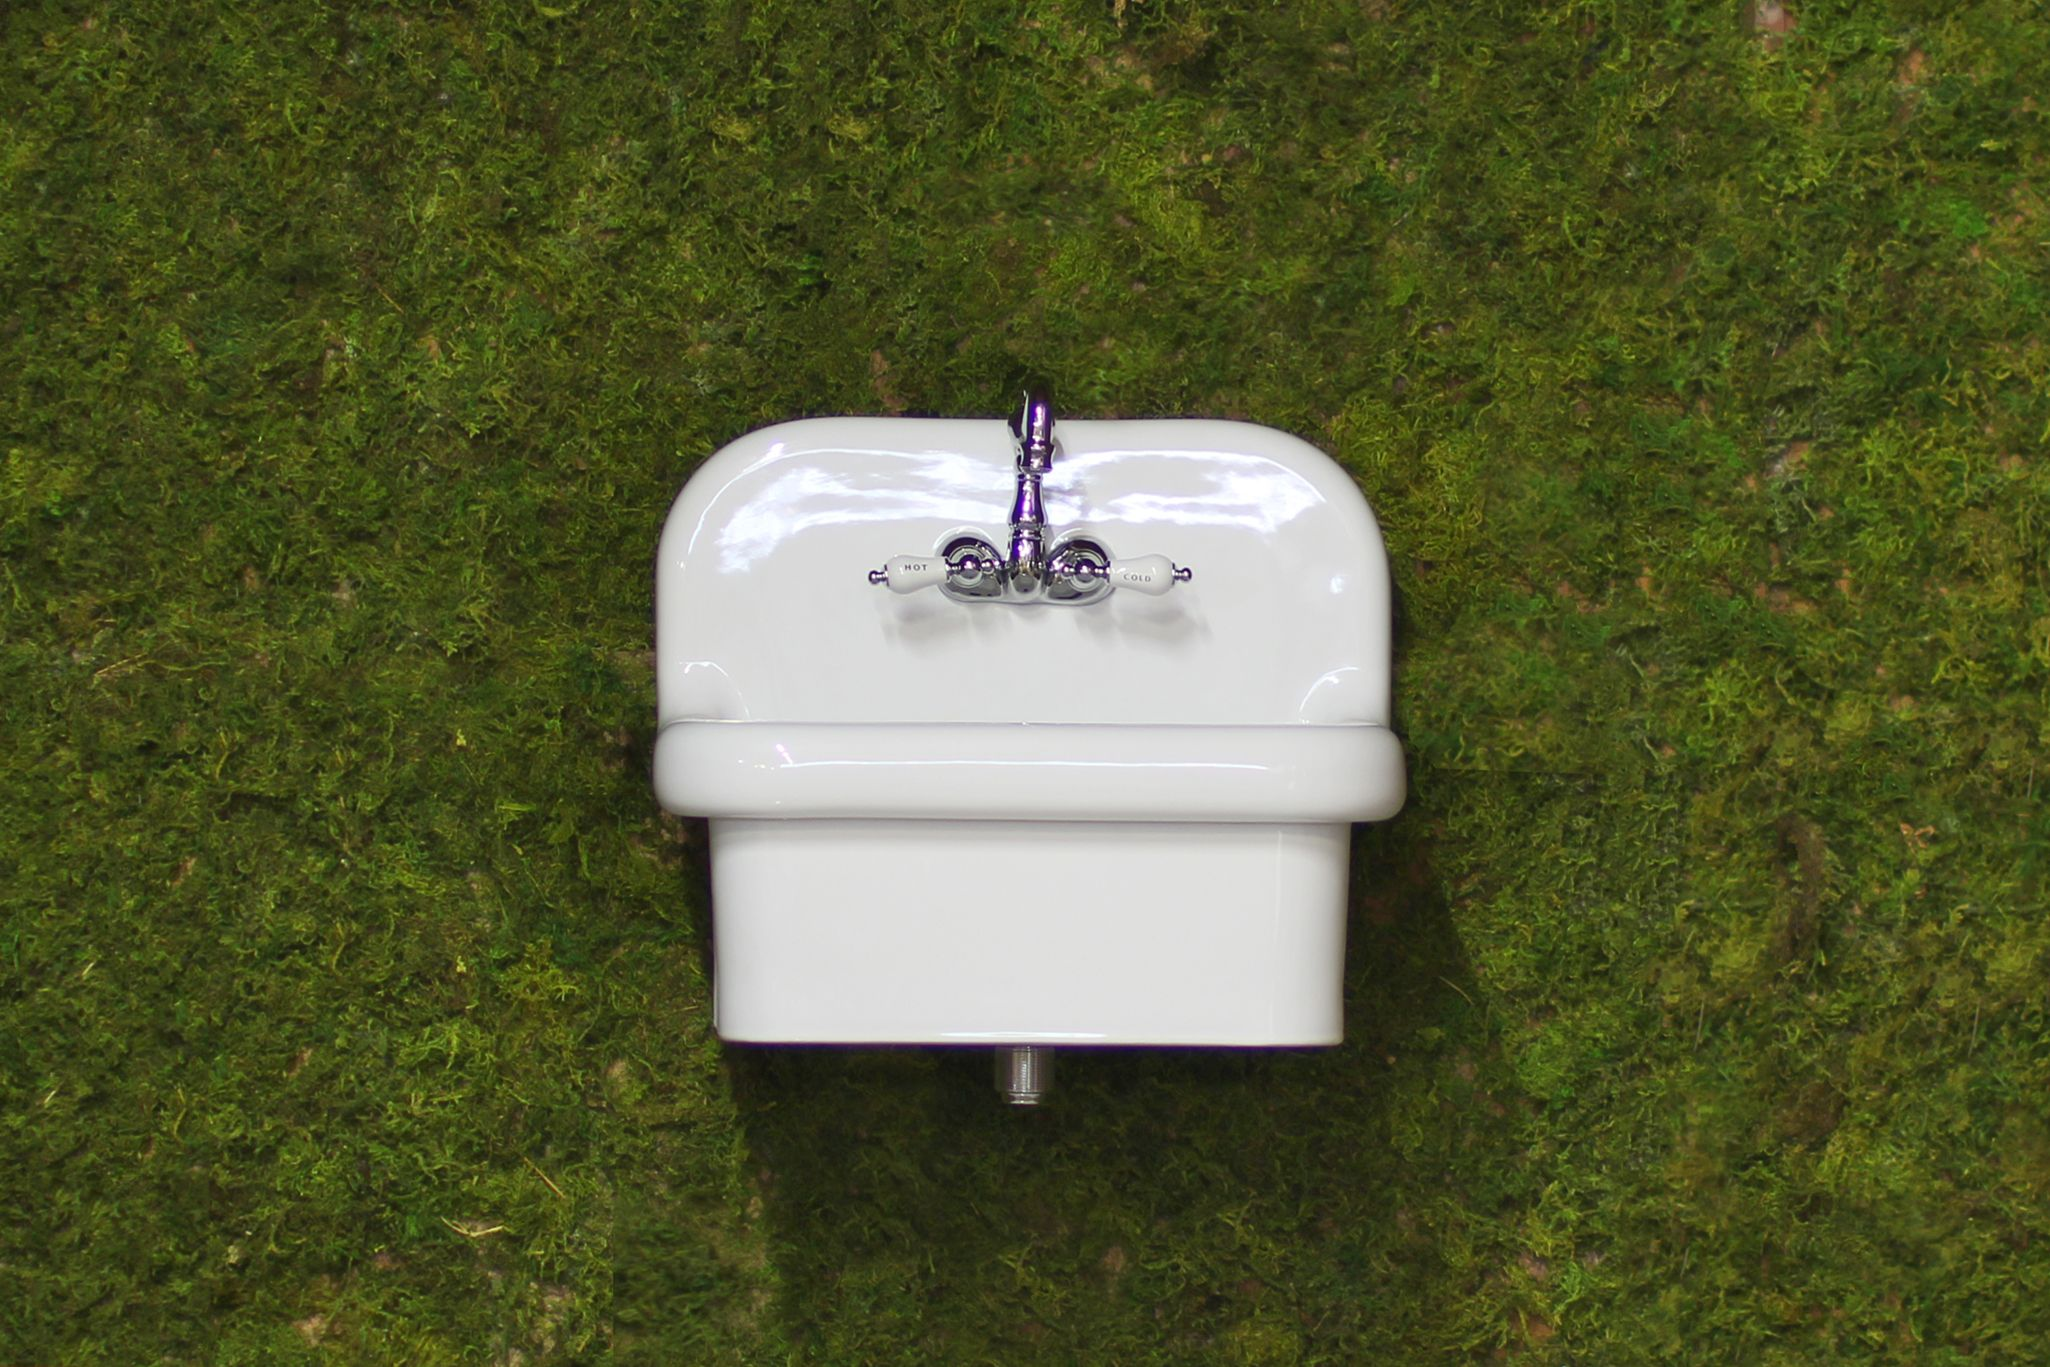 New Small Wall Mount High Back Bath Sink Antique Inspired Deep Basin Porcelain Farm Sink Package White Antique Bathroom Sink Farm Sink Wall Mounted Bathroom Sinks